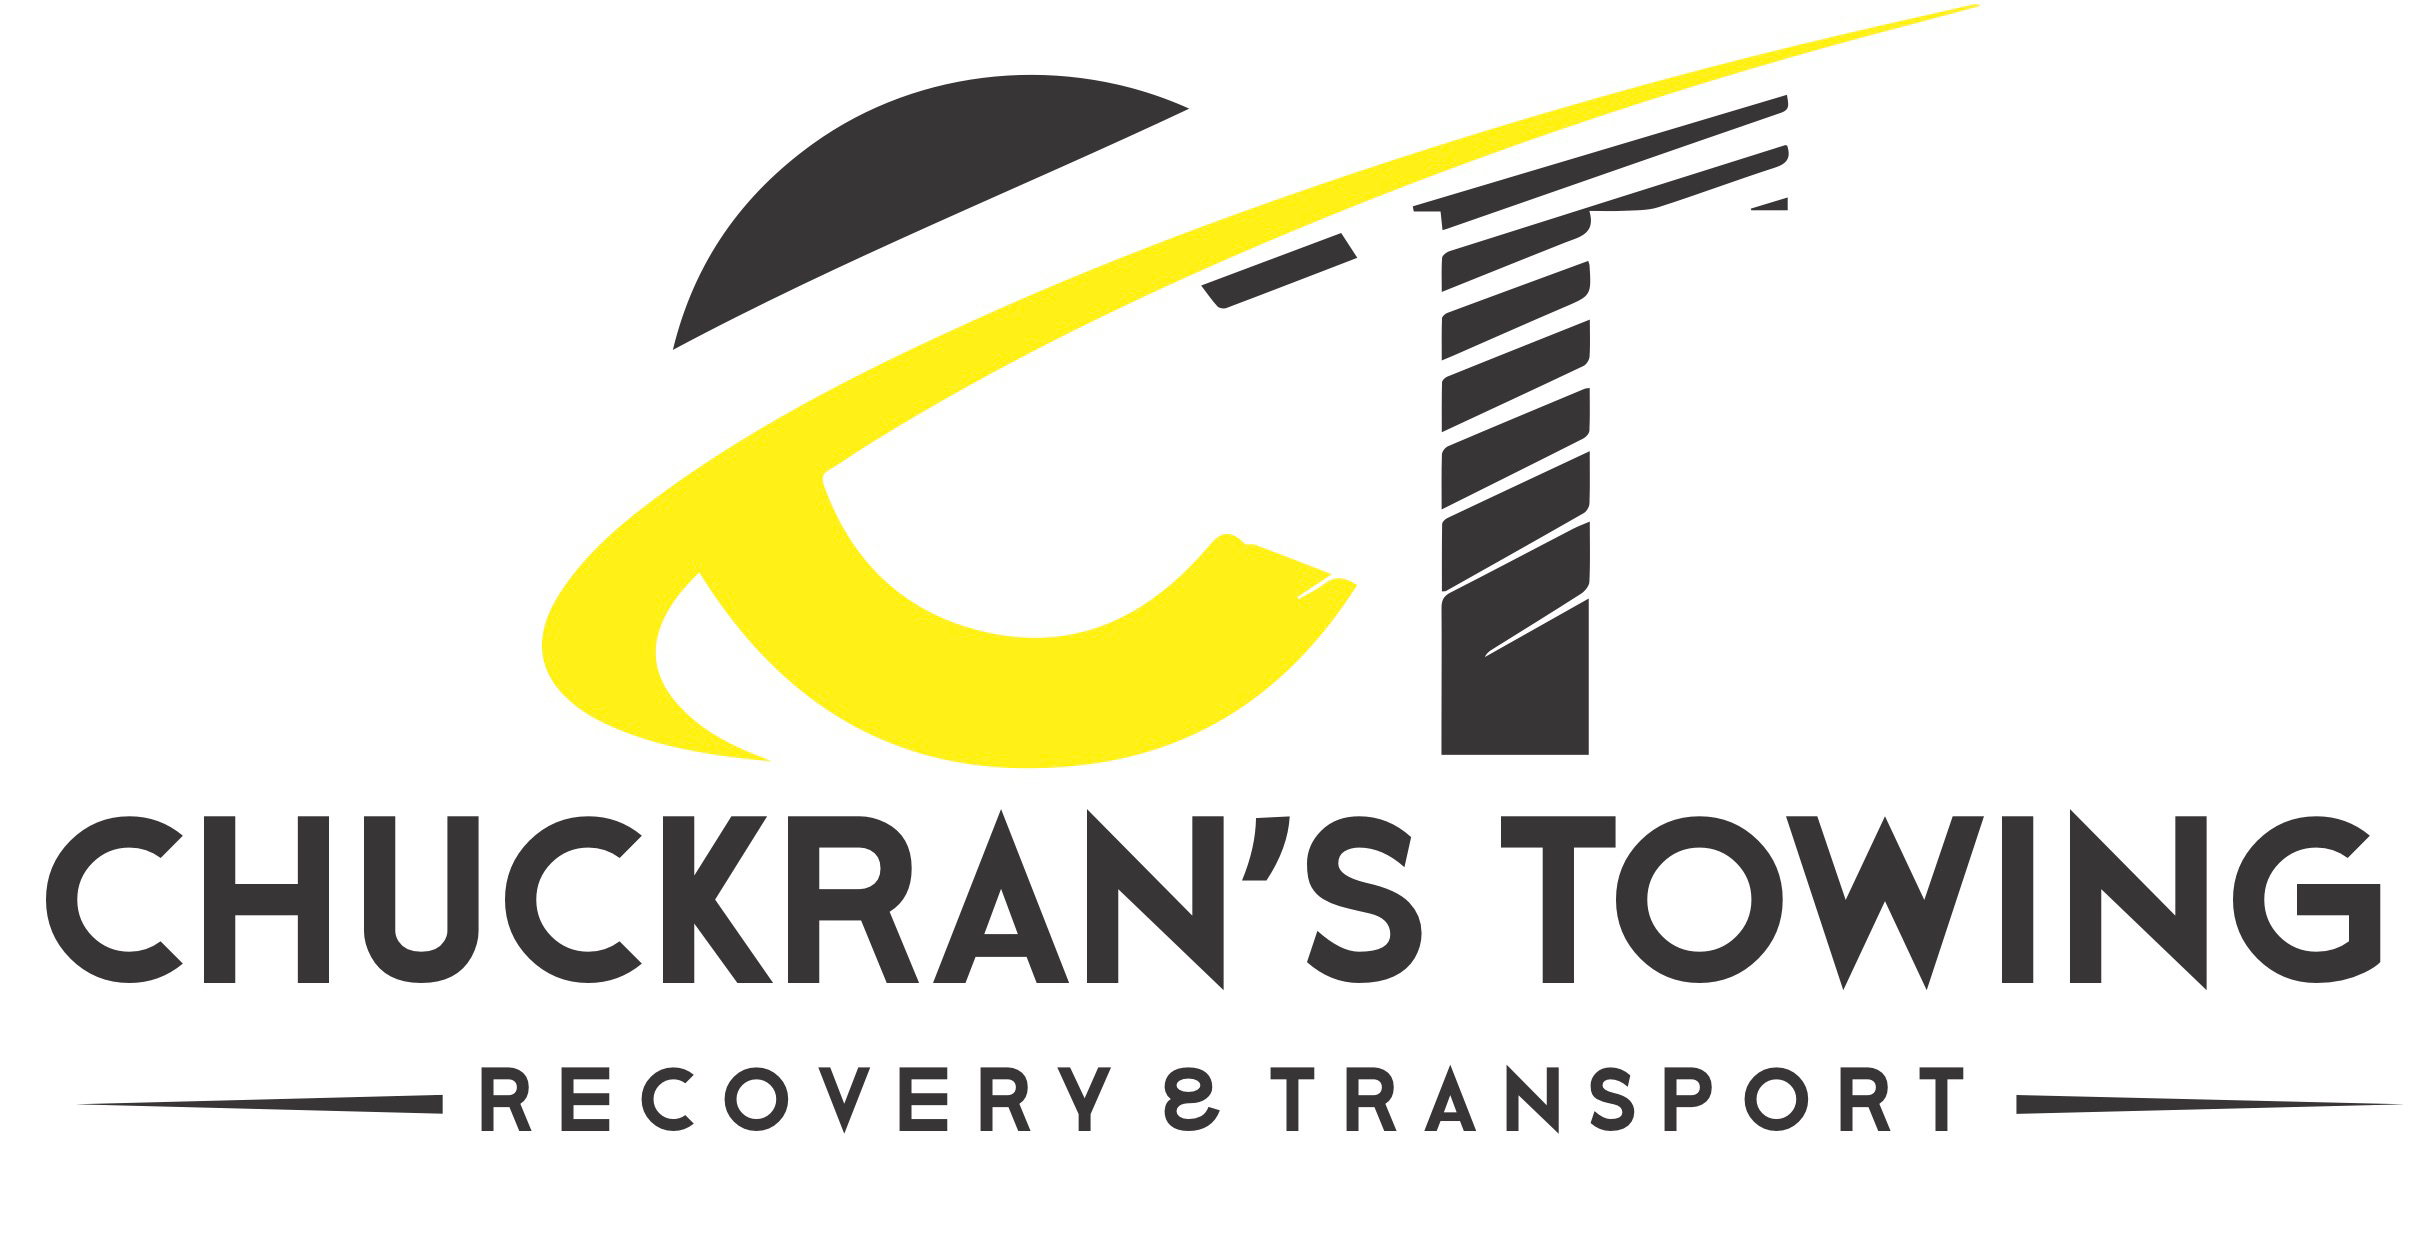 Chuckran's Towing, Recovery & Transport logo